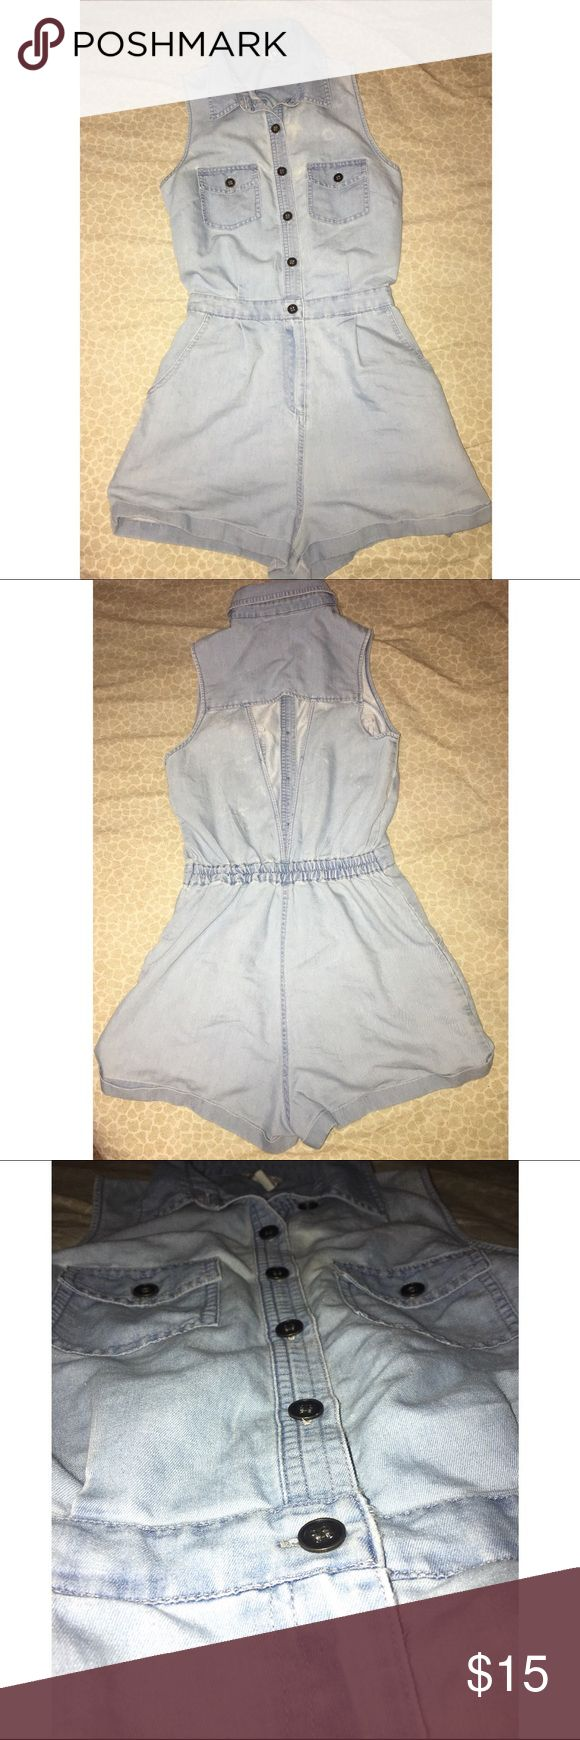 Forever 21 jean romper Forever 21 light-wash jean romper. Has a triangular cut out design on the back. Size small. Forever 21 Pants Jumpsuits & Rompers